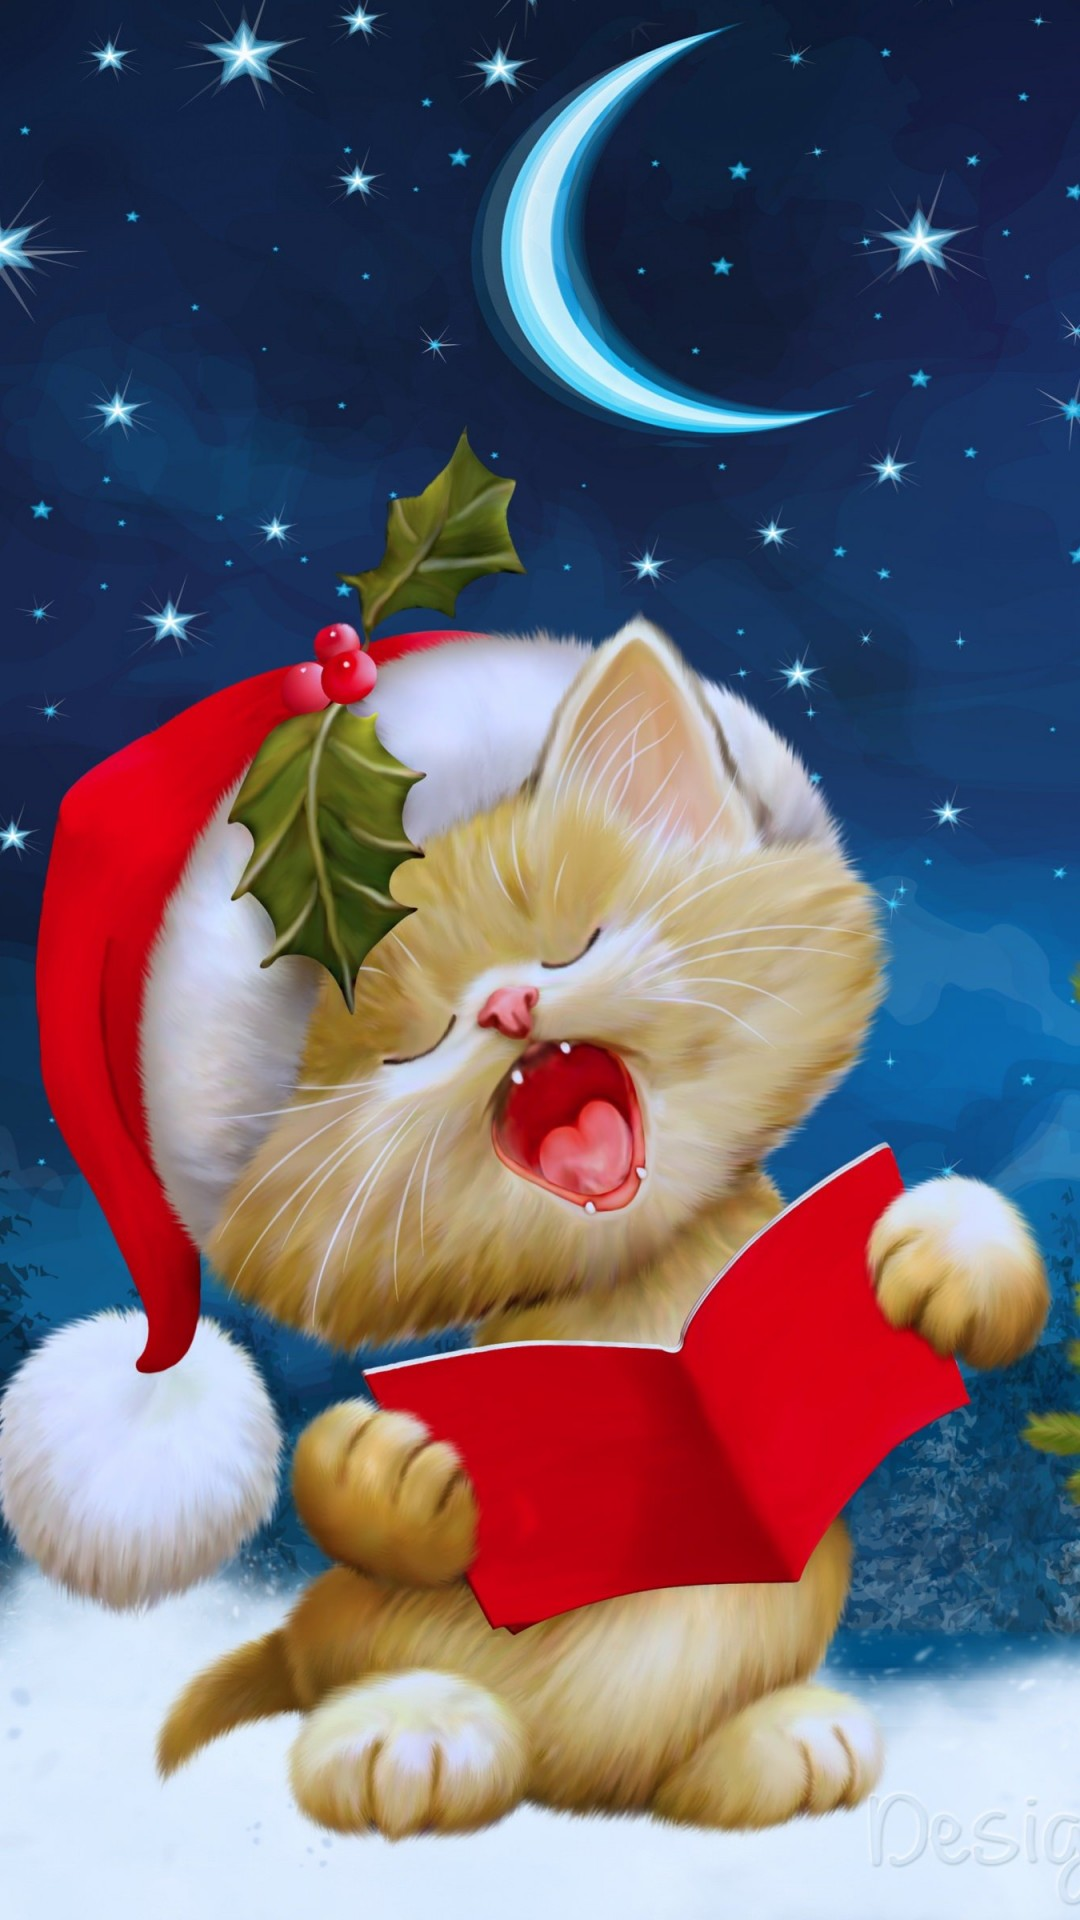 Santa Kitten Singing Christmas Carols Wallpaper for LG G2